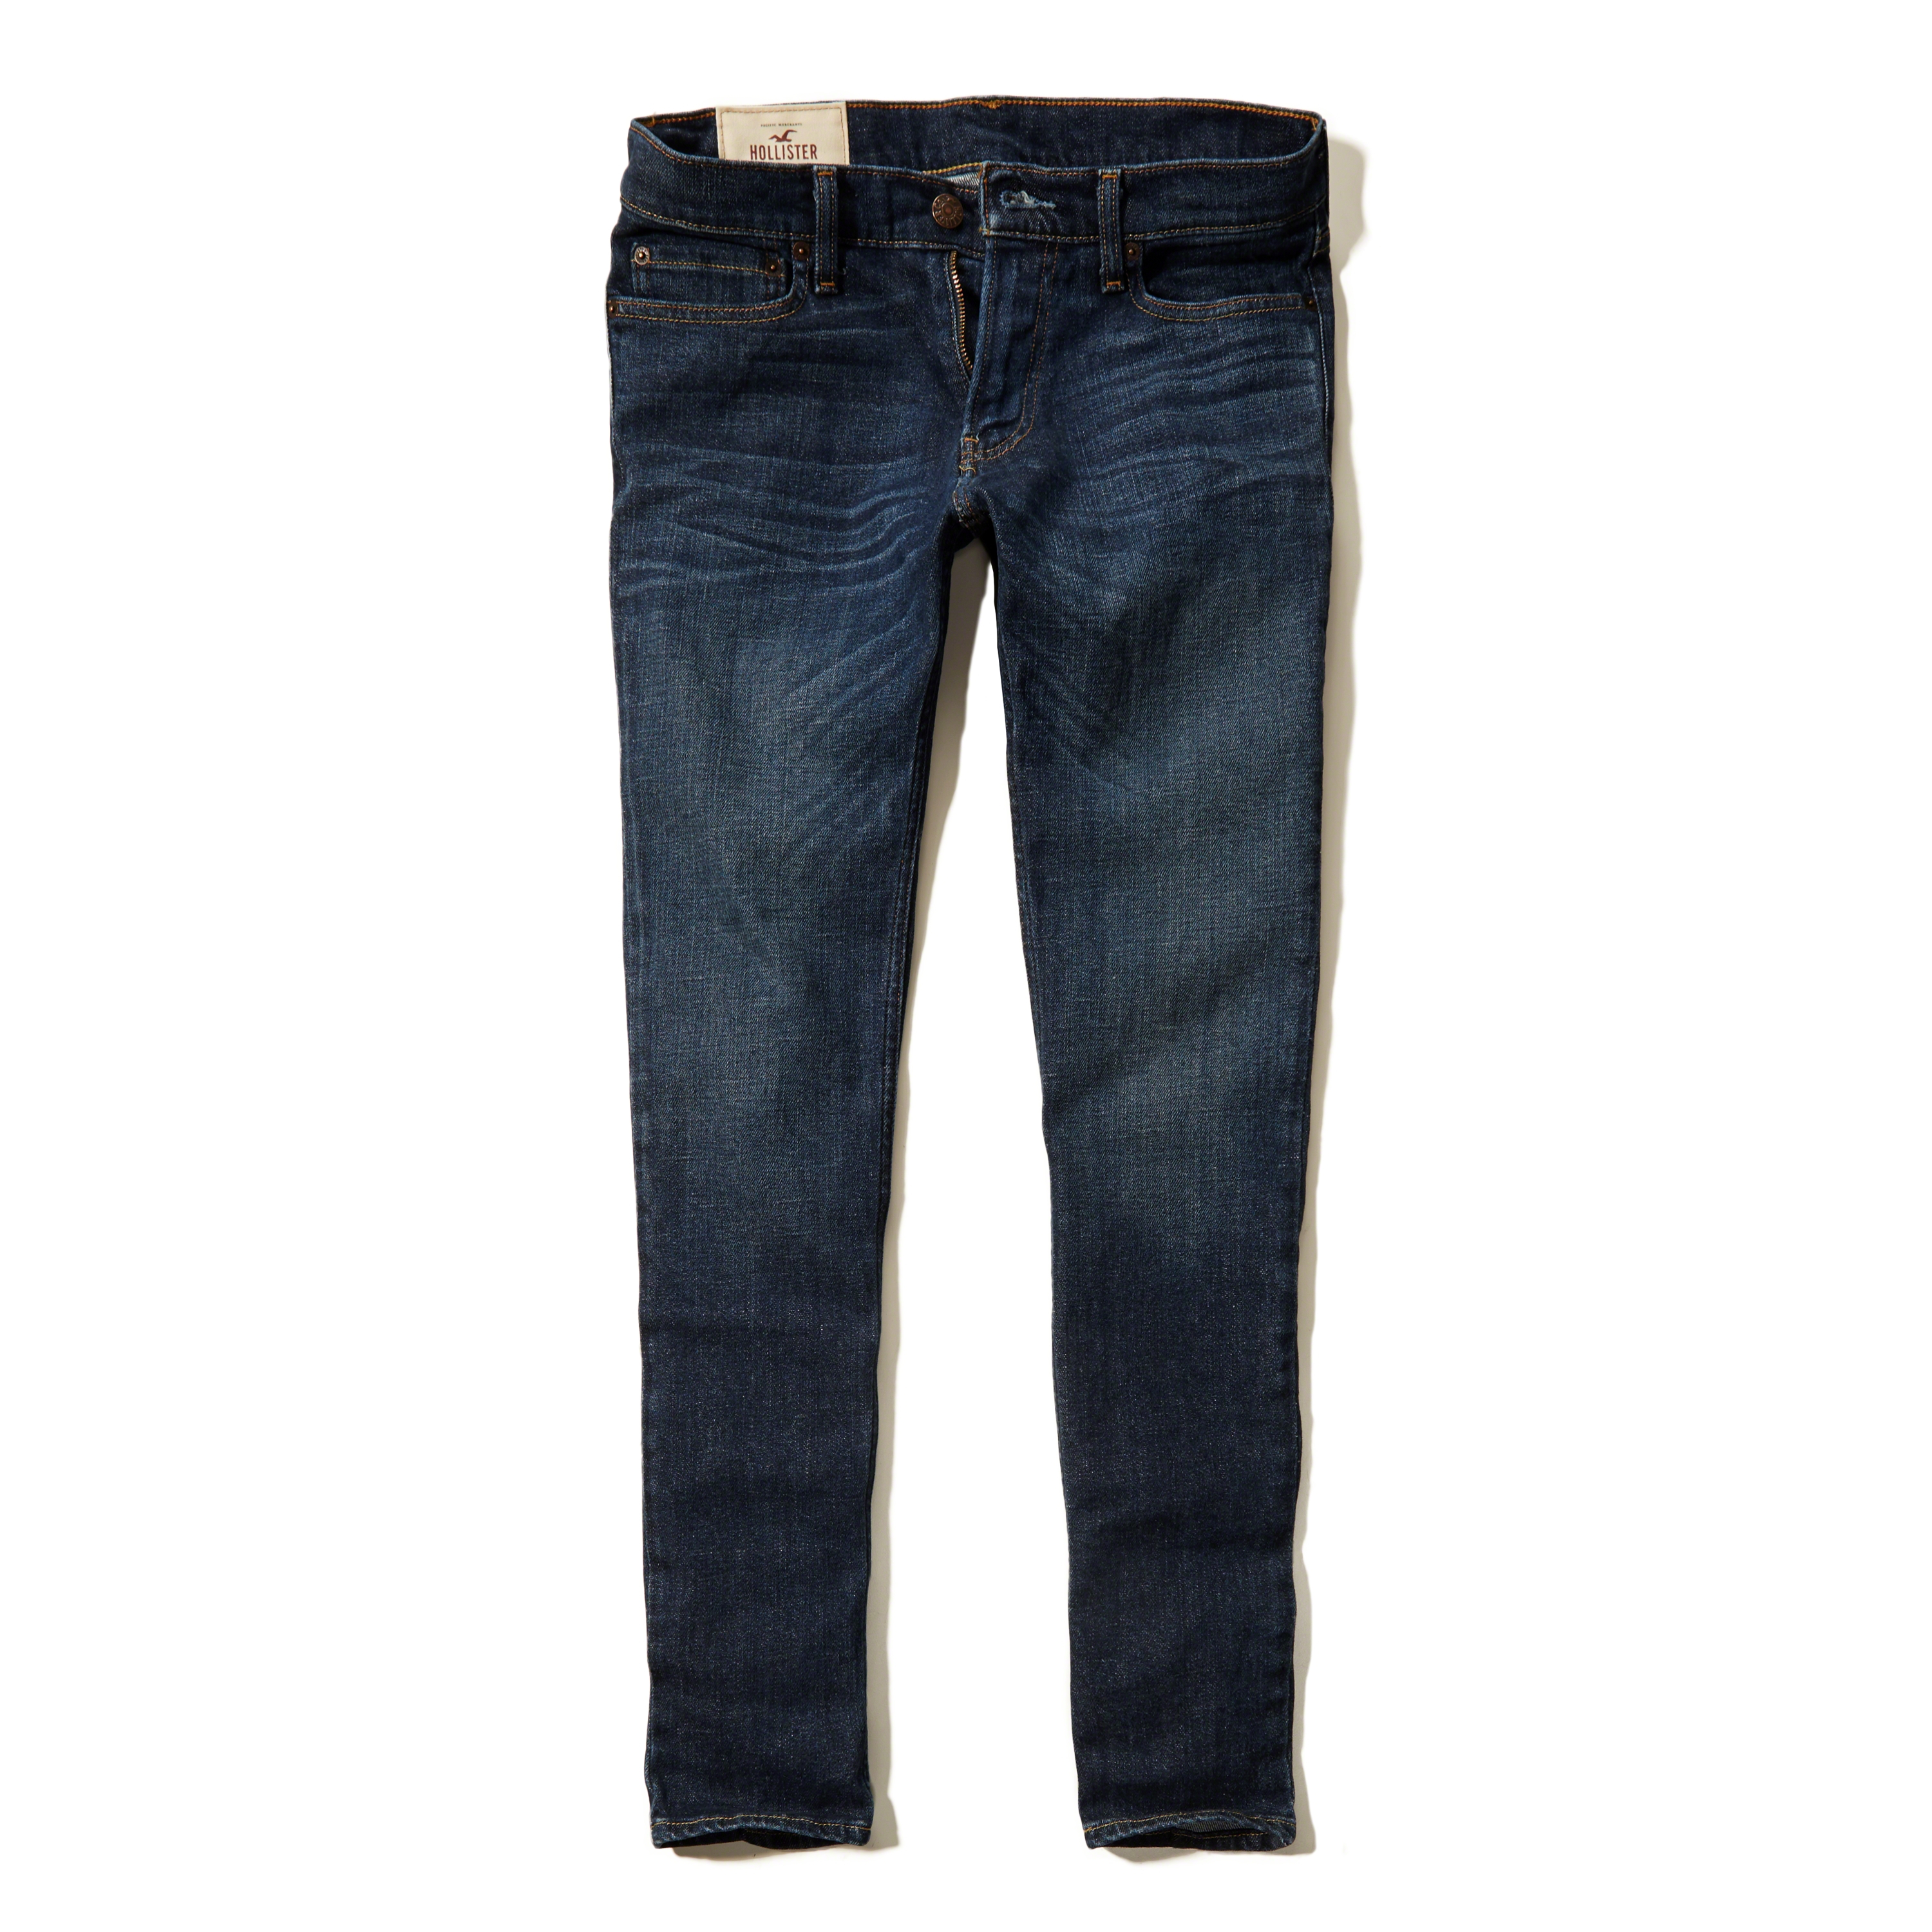 hollister dark jeans for men - photo #35